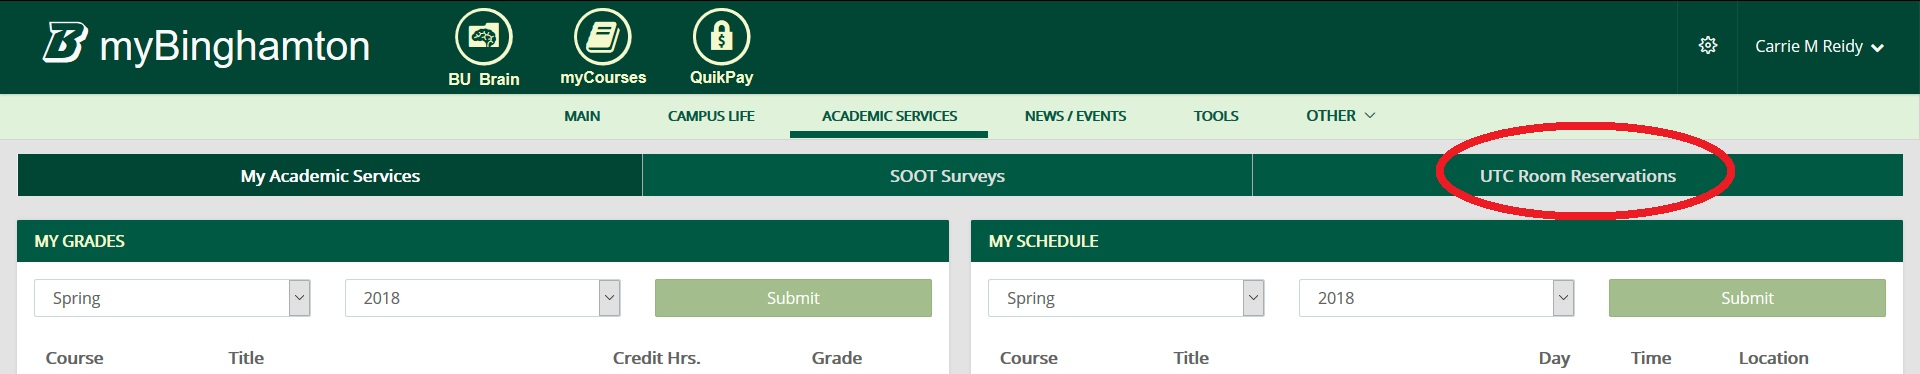 Screenshot of Academic Services tab